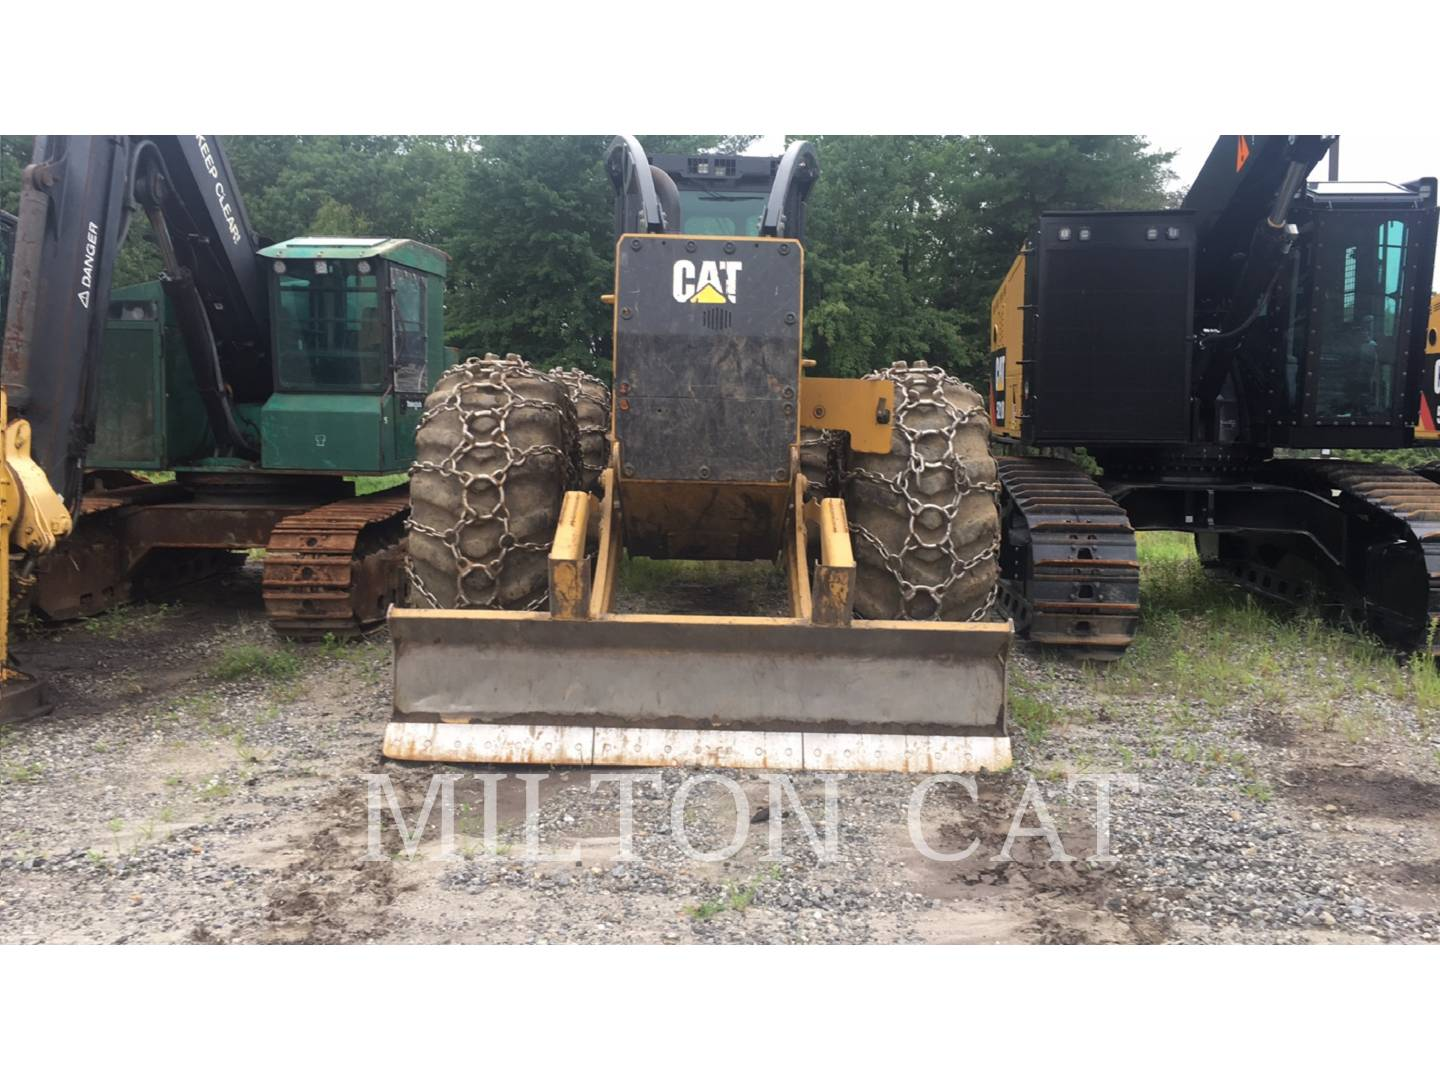 2015 Caterpillar 555D Skidder for sale in MILFORD, MA